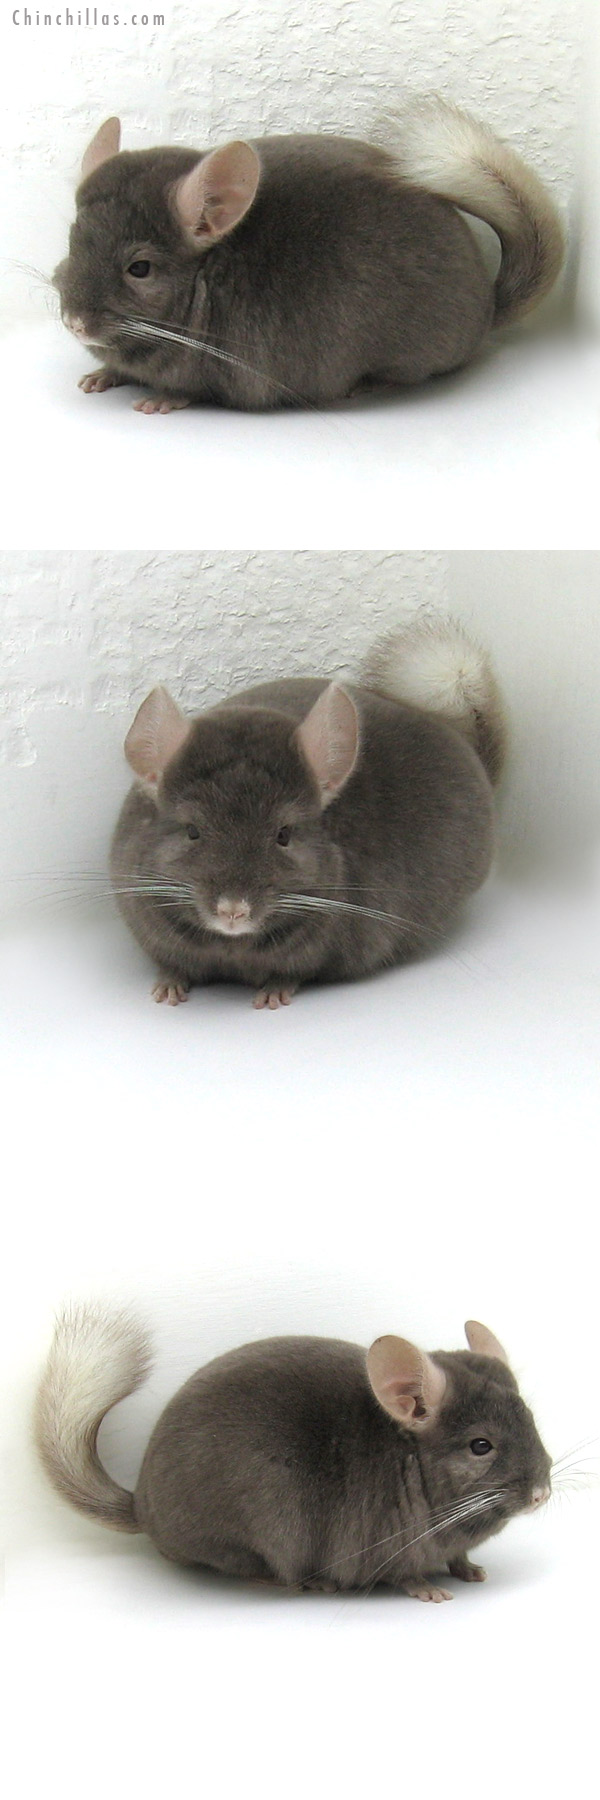 12159 Herd Improvement Quality Tan Male Chinchilla